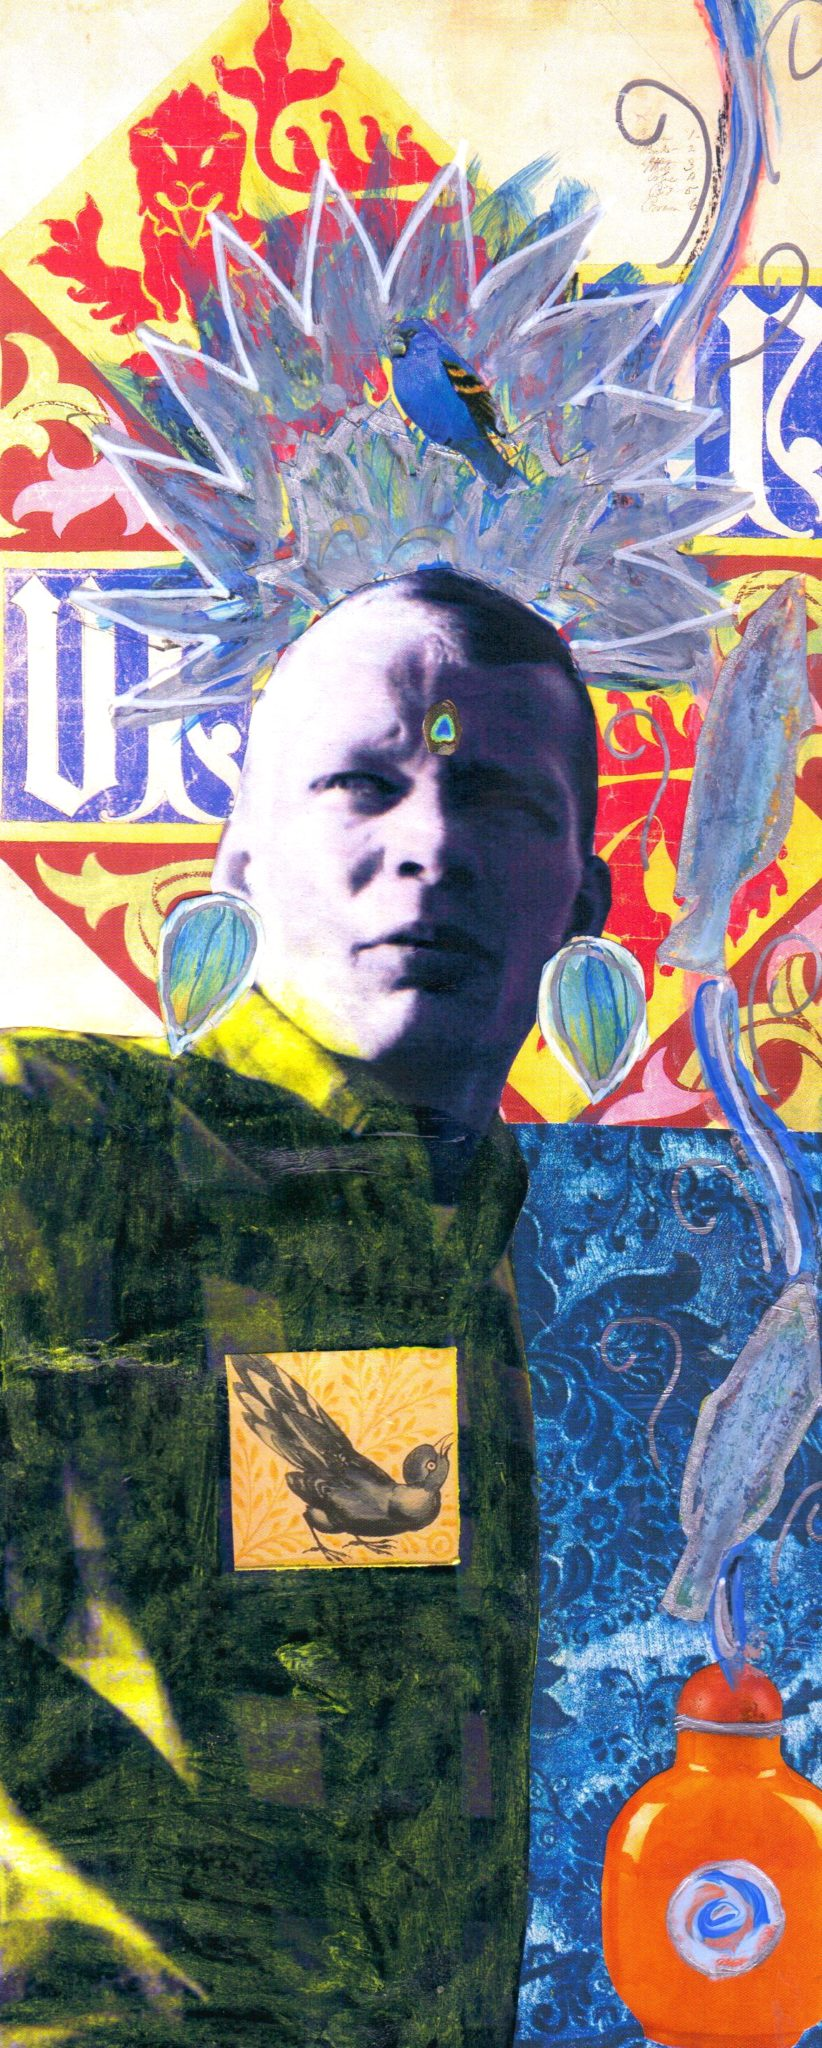 Prince of Action, mixed media collage by Courtney Putnam